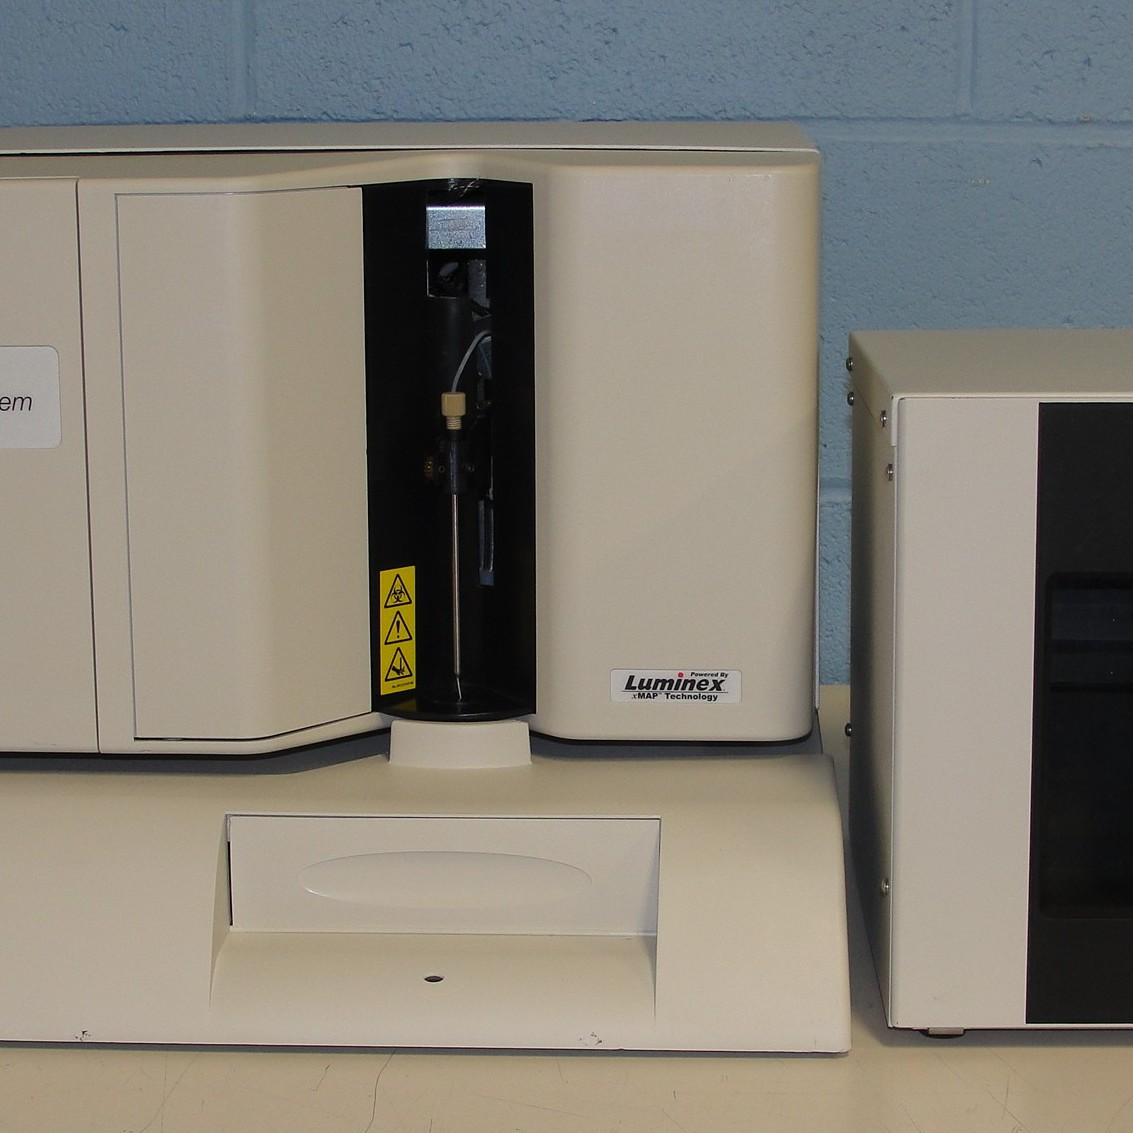 Bio-Rad Luminex 100 Bio-Plex Liquid Array Multiplexing System Image